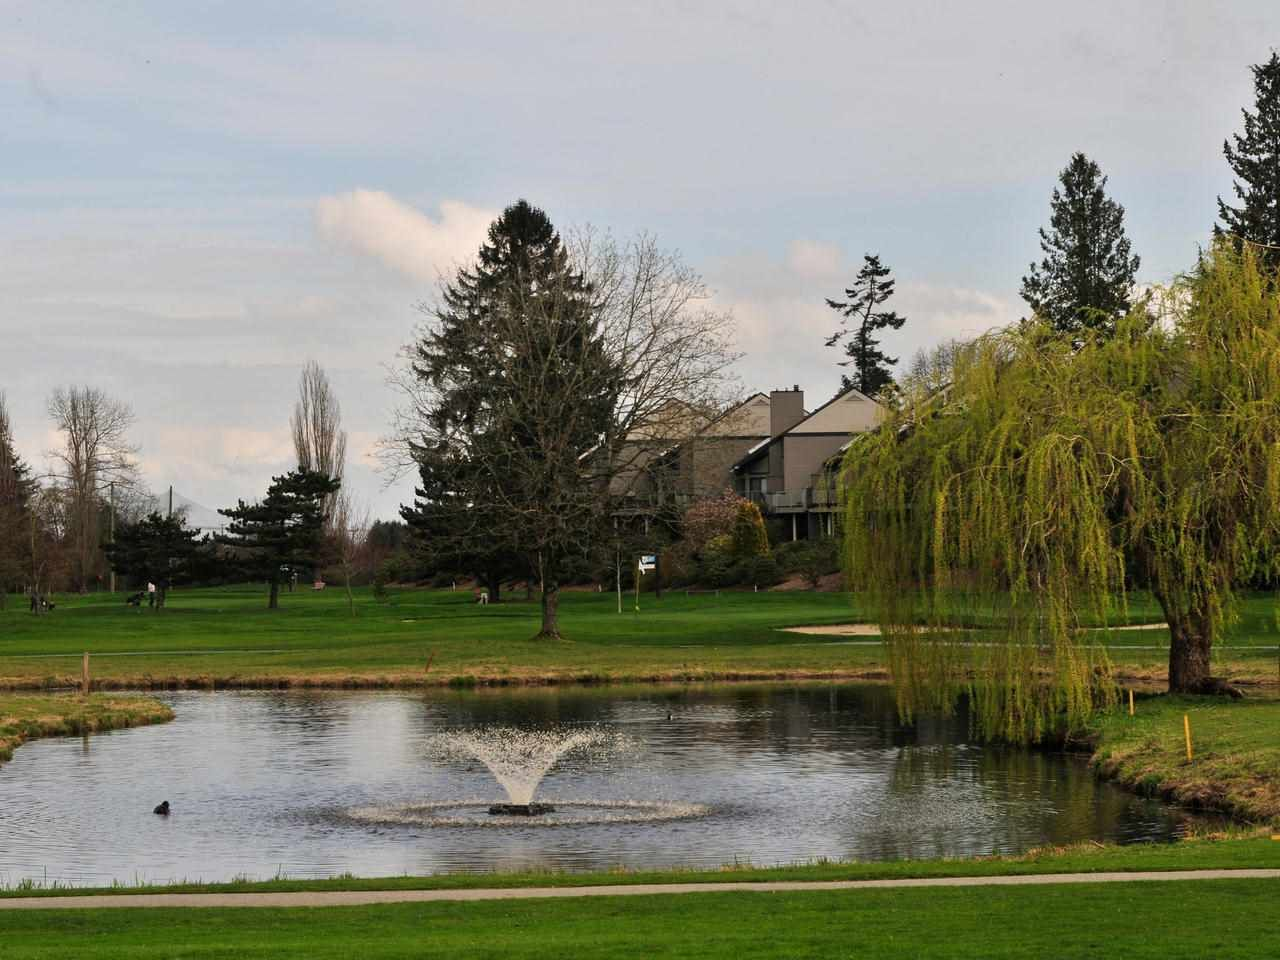 Nico Wynd - A unique strata complex on 76acres - OWN LAND!  9hole public golf course with 2 unlimited golf membership incl) indoor pool, hot tub , sauna, gym, tennis, pickleball & a private marina.  Walking/biking trails, pet friendly & no age restriction